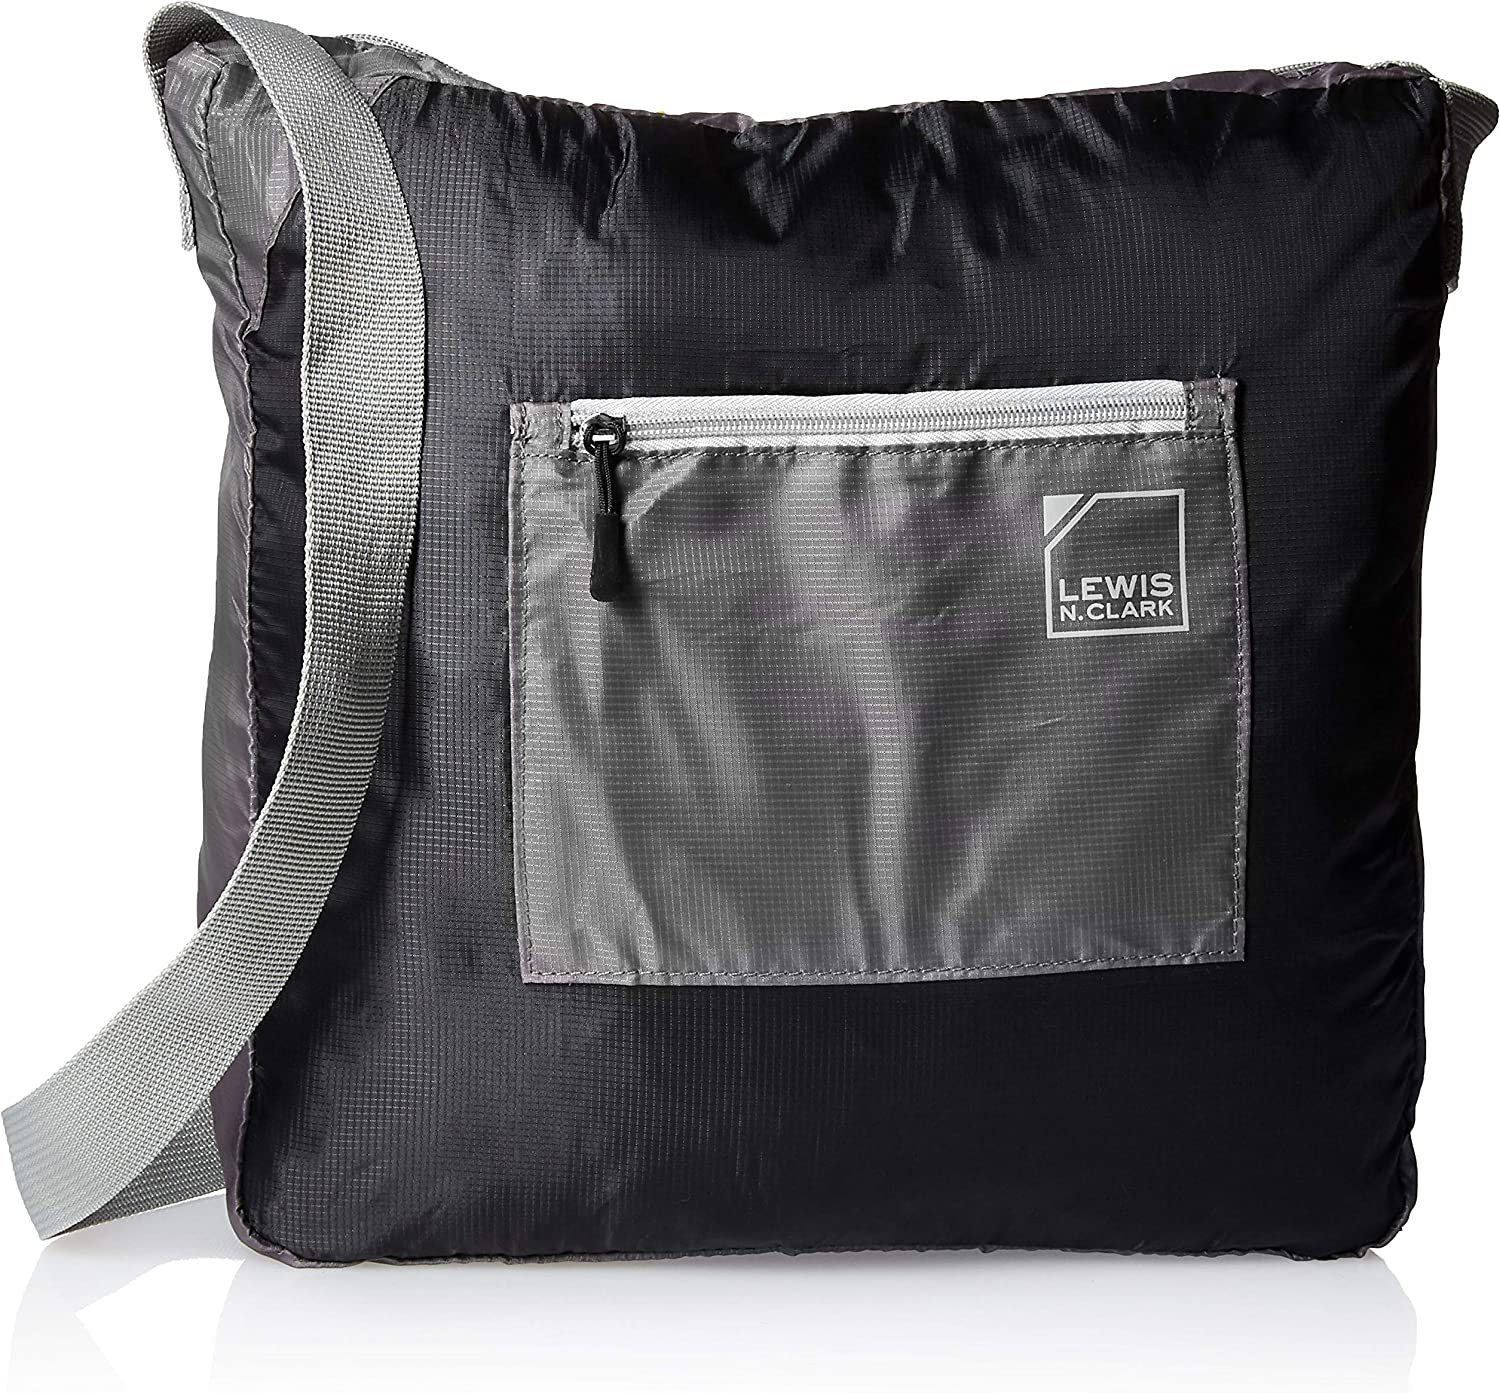 """Black//Gray Lewis N Clark 15/"""" Packable Tote with Neoprene Zip Pouch Travel One Size"""